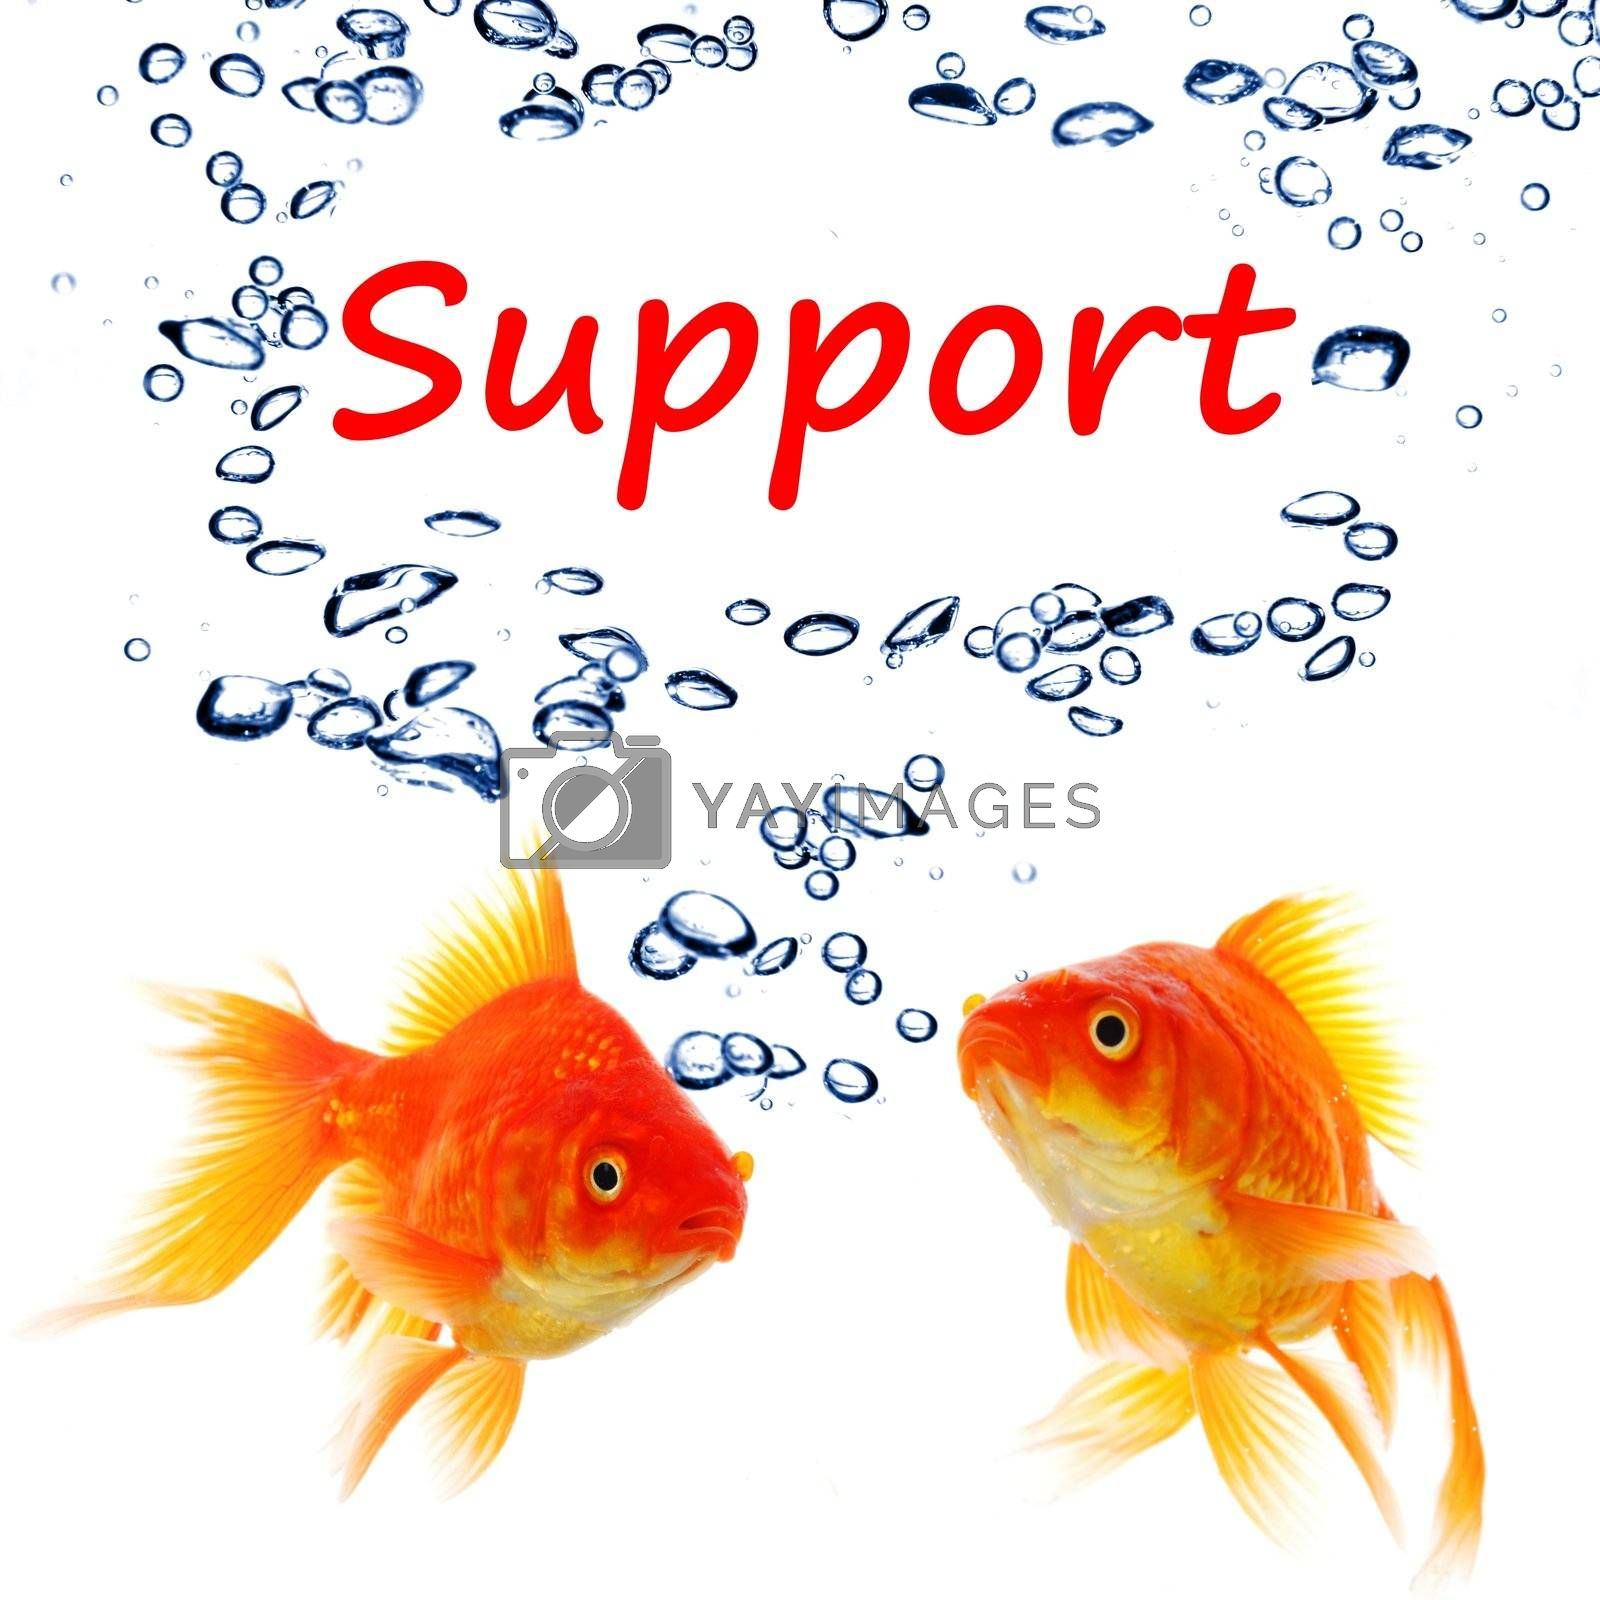 support or contact us concept with goldfish and water bubbles on white